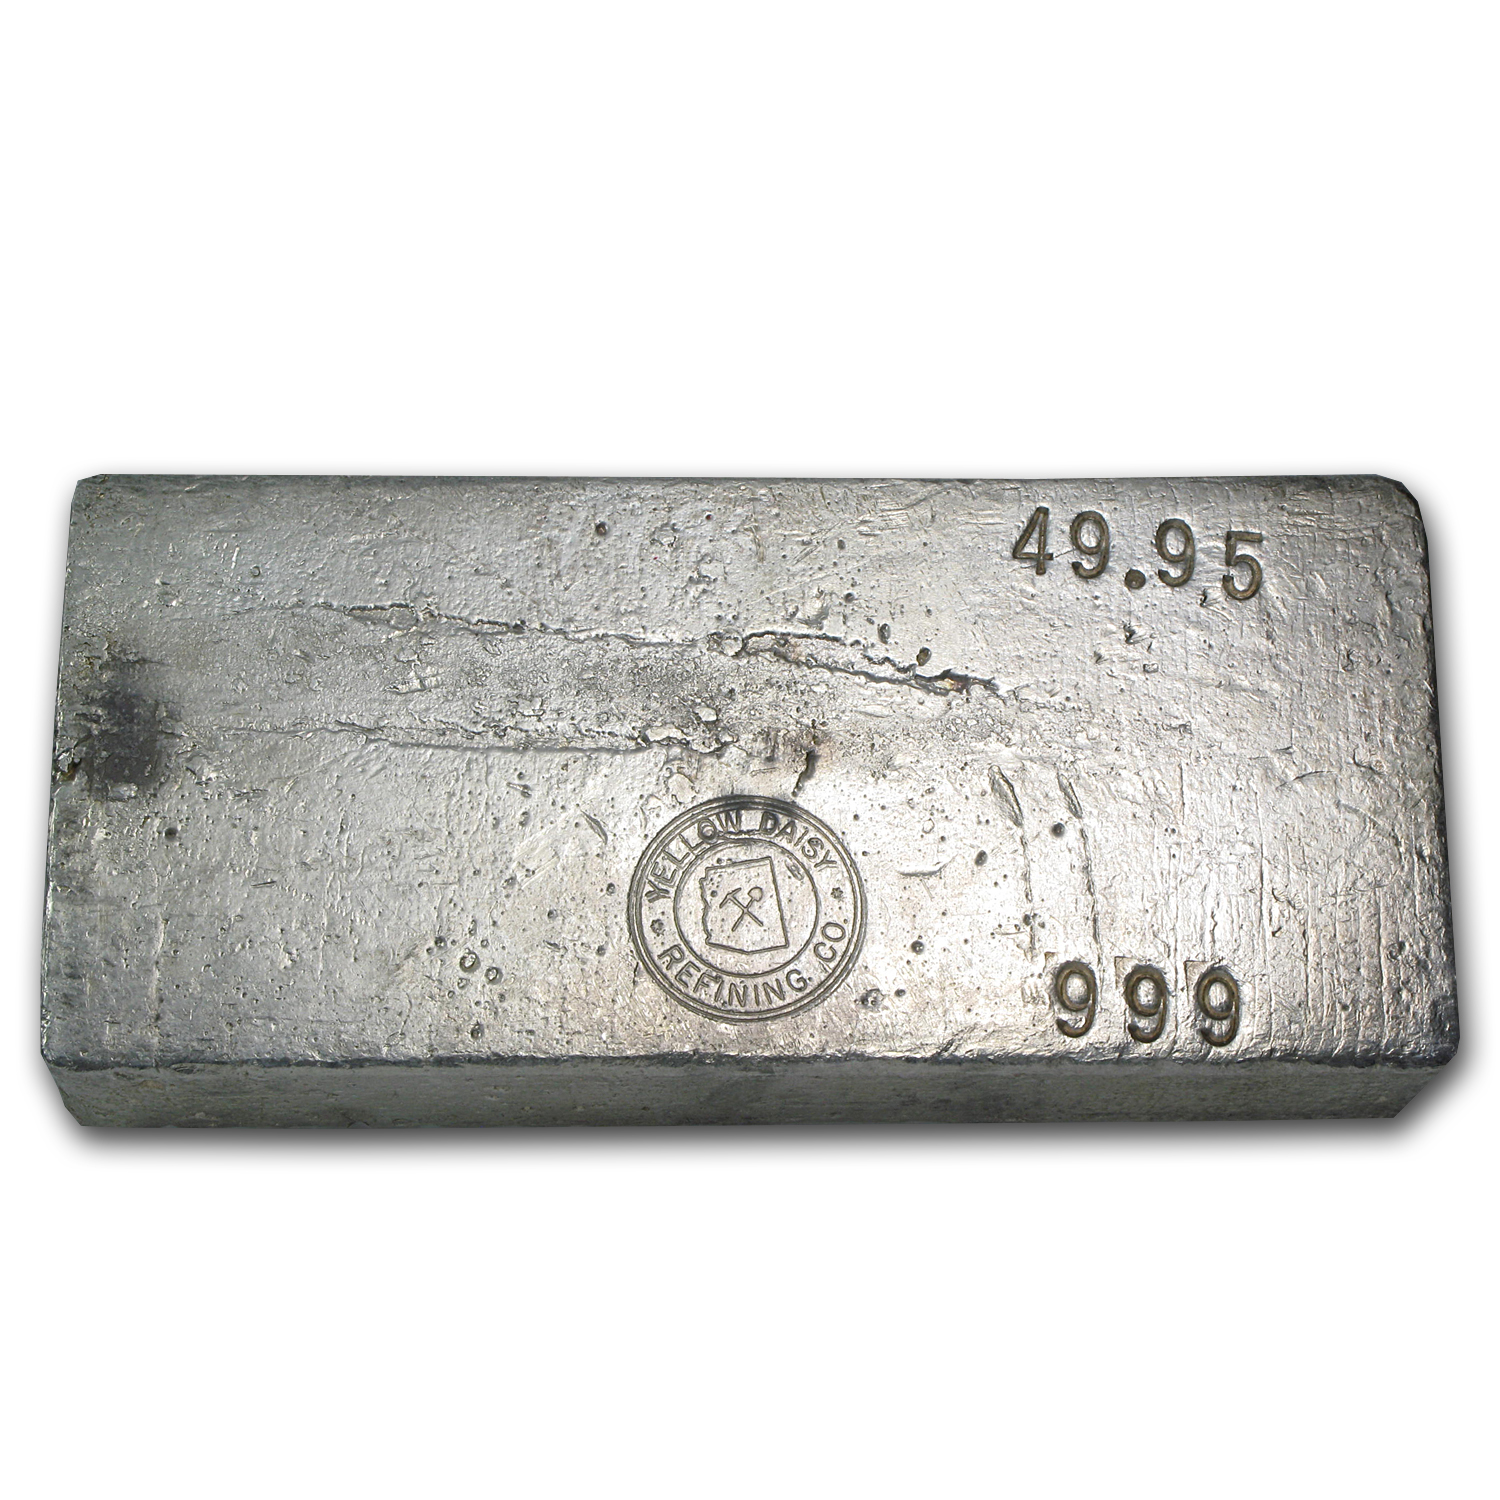 49.95 oz Silver Bars - Yellow Daisy Refining Co.